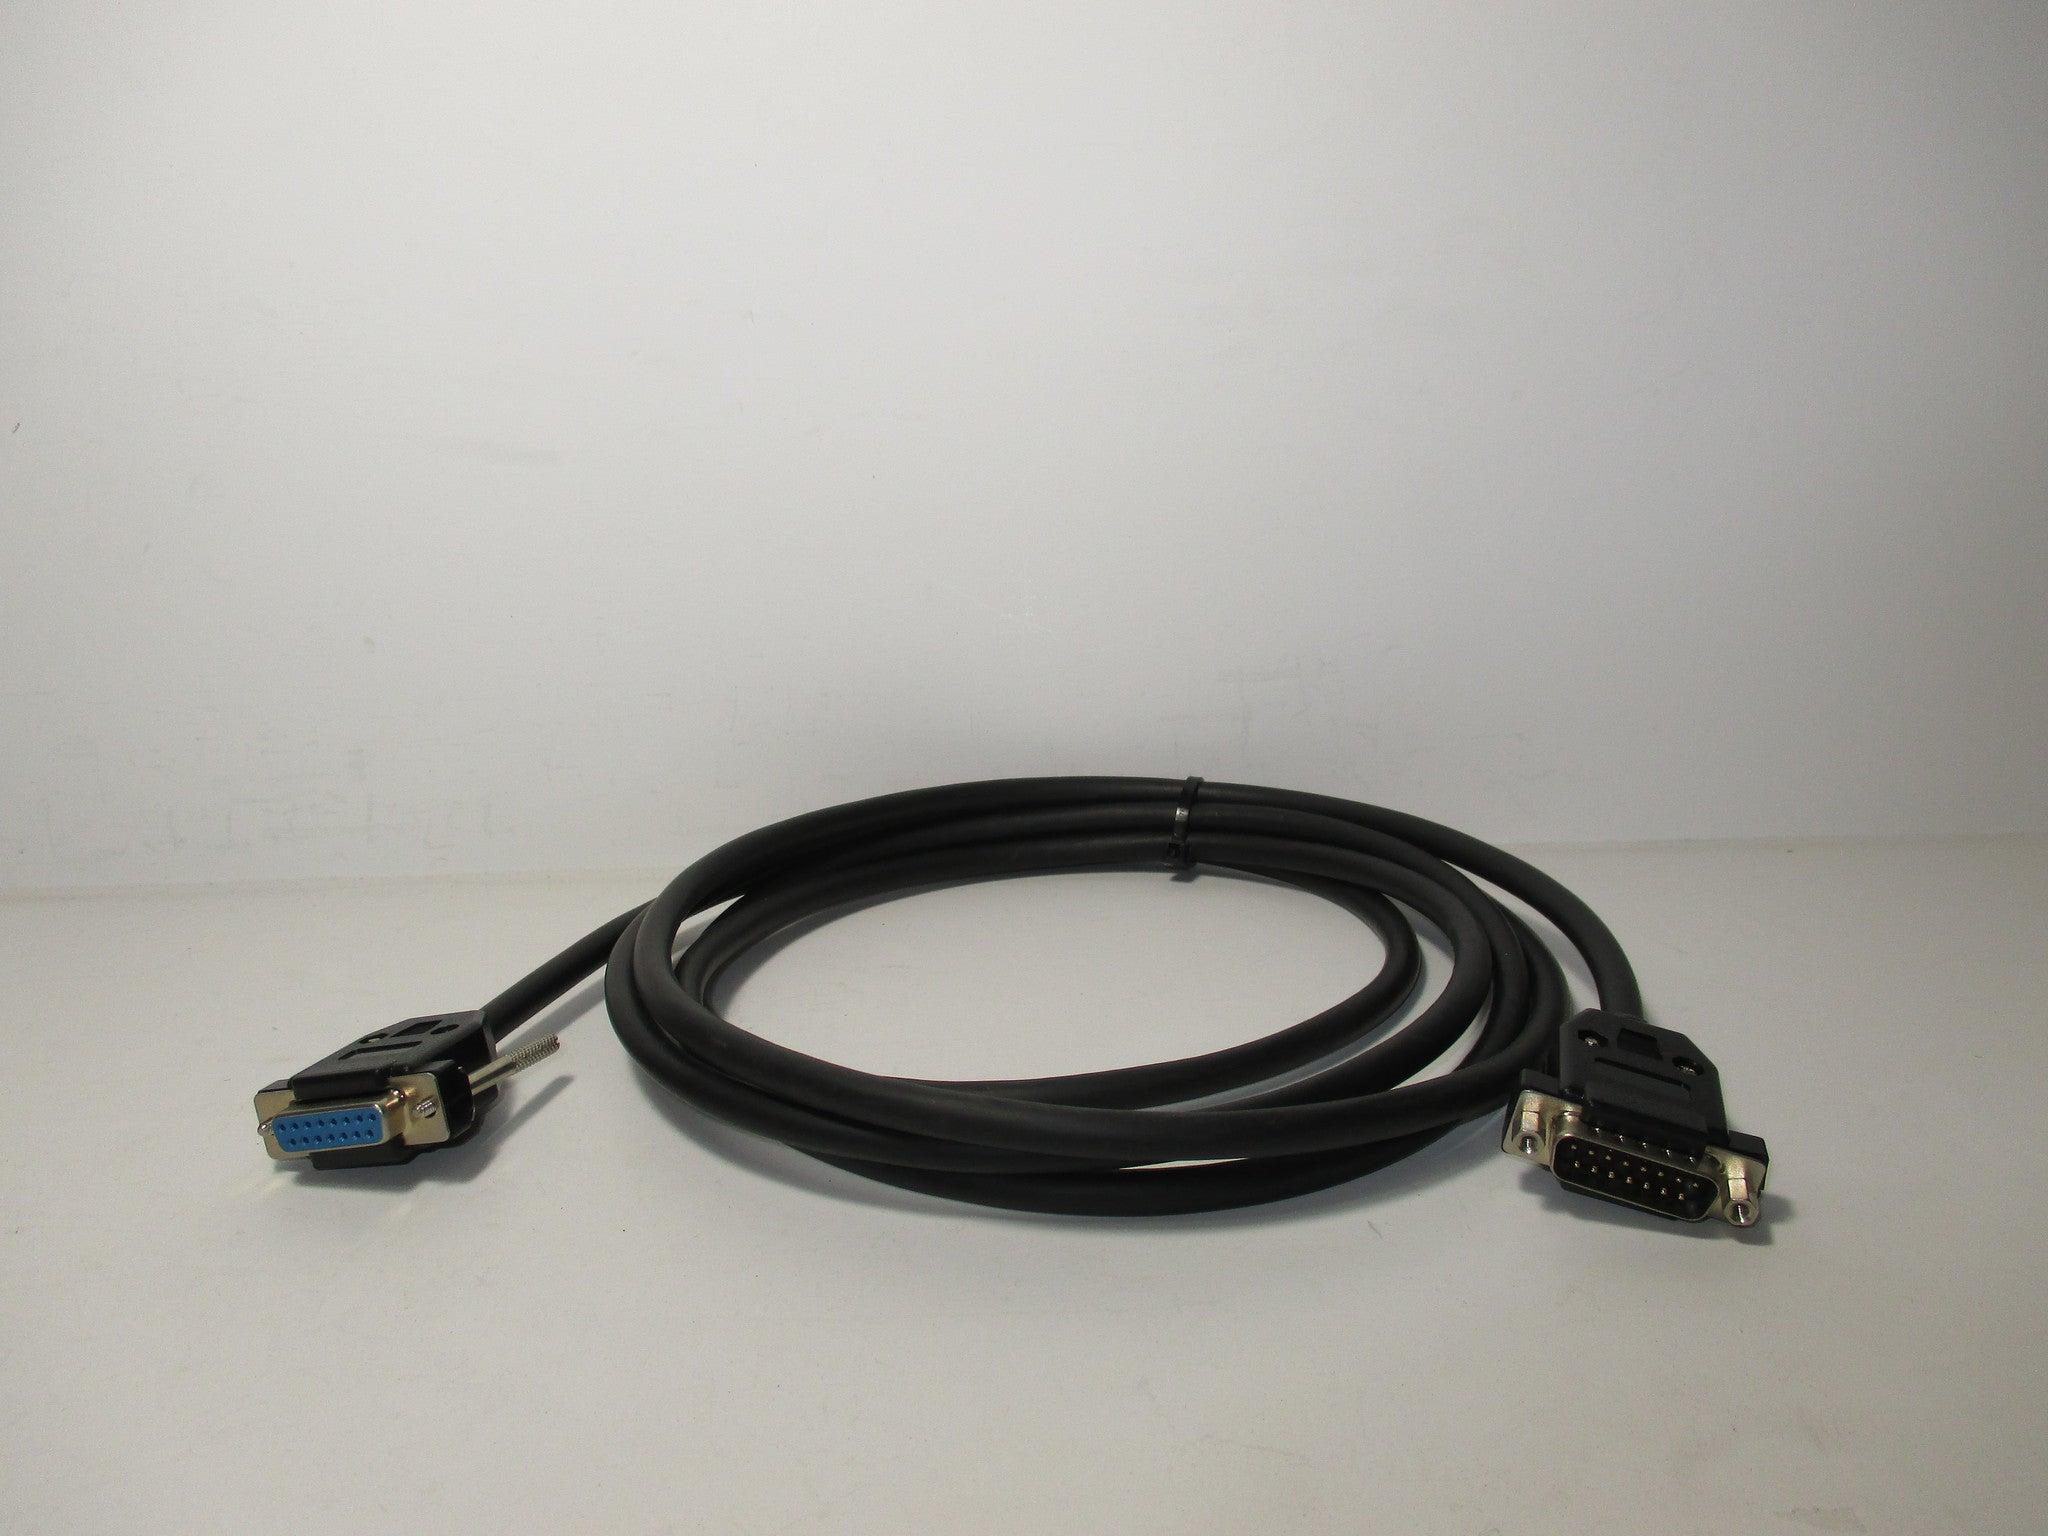 SUN OBDII  CABLE EXTENSION, 9', P.N. 6622EXT9